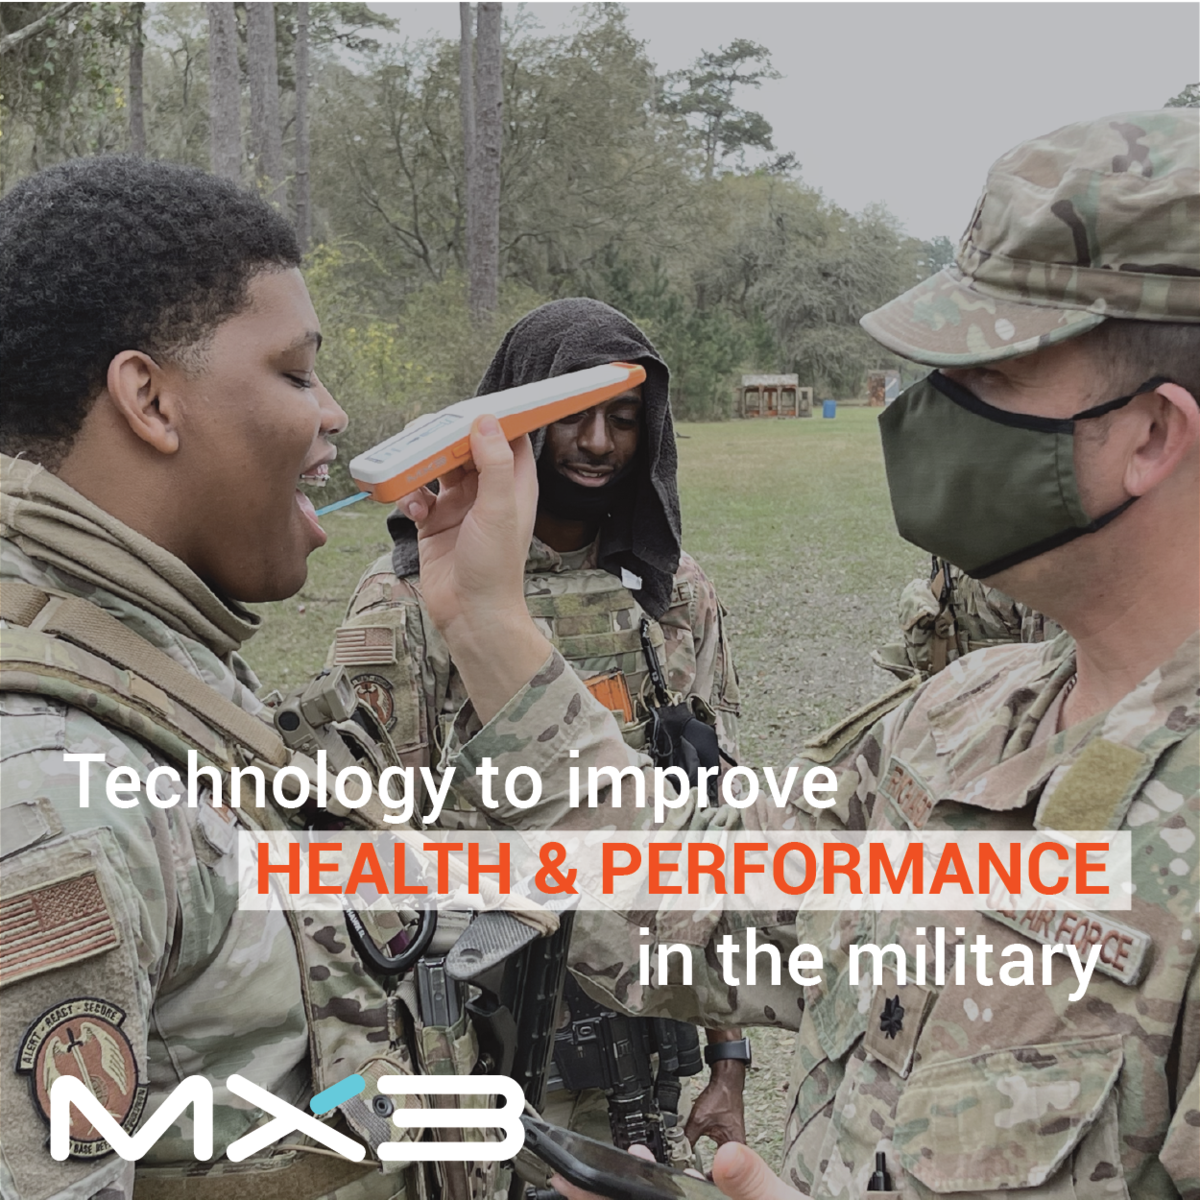 Technology to improve Health & Performance in the military